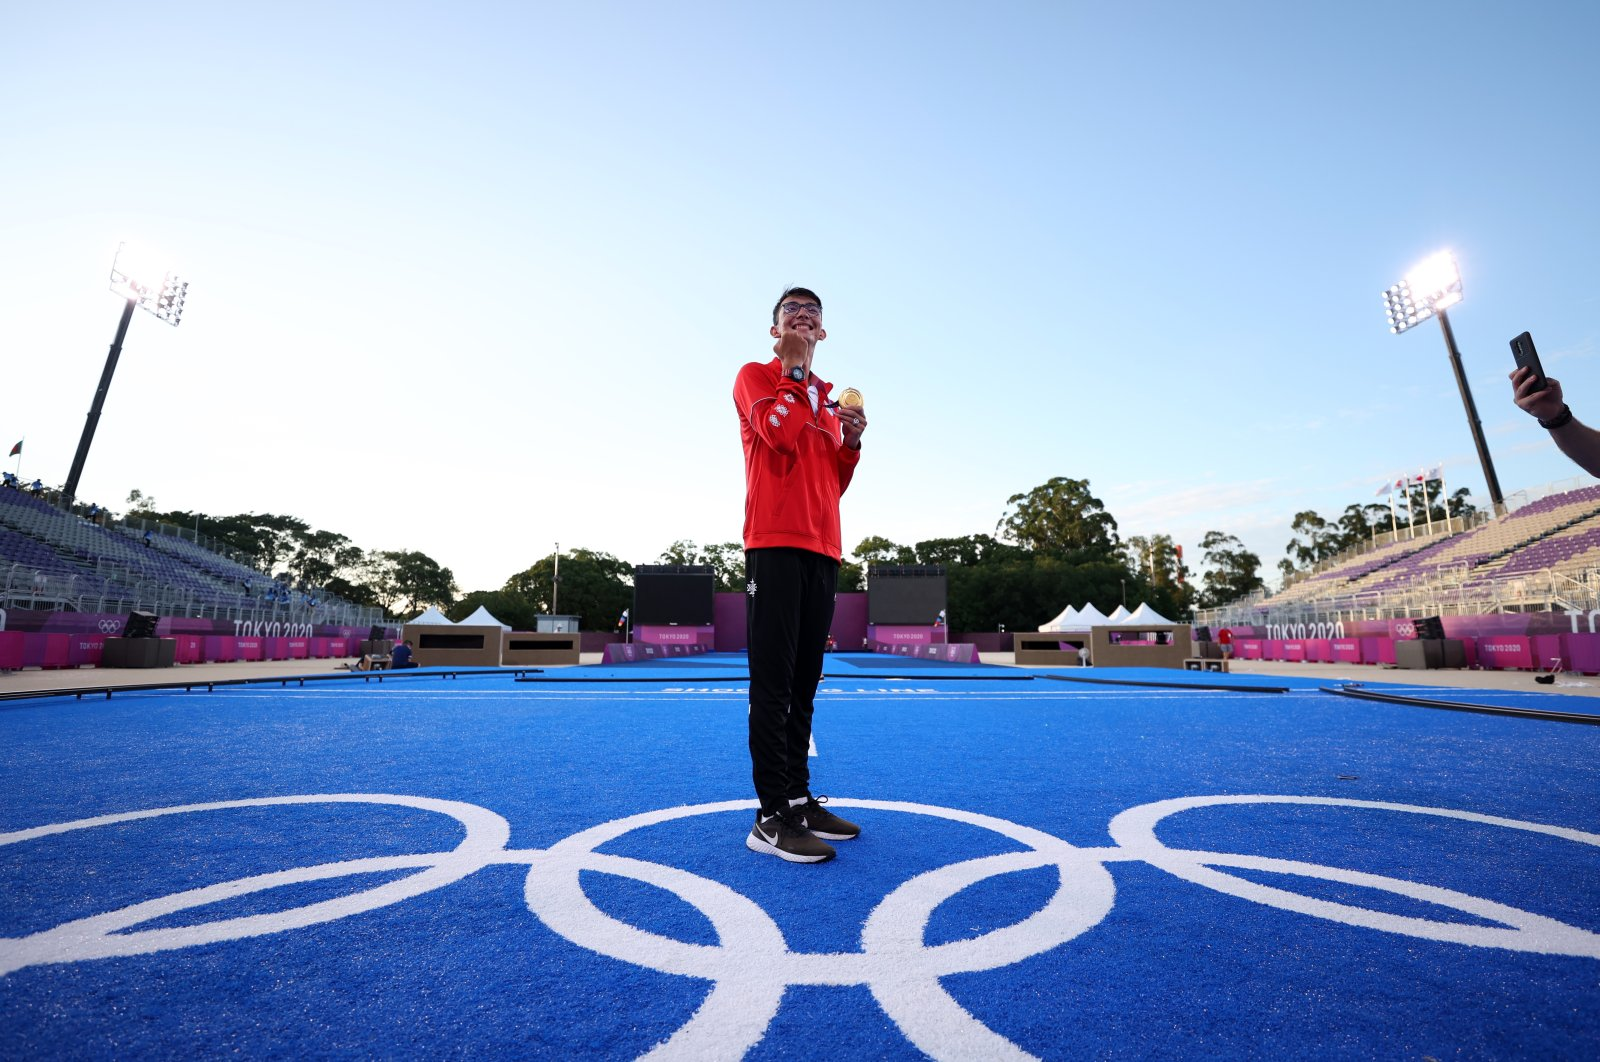 Taking first place, Turkey's national archer Mete Gazoz celebrates on the podium of the men's individual competition at the 2020 Tokyo Olympics, Tokyo, Japan, July 31, 2021. (AP Photo)